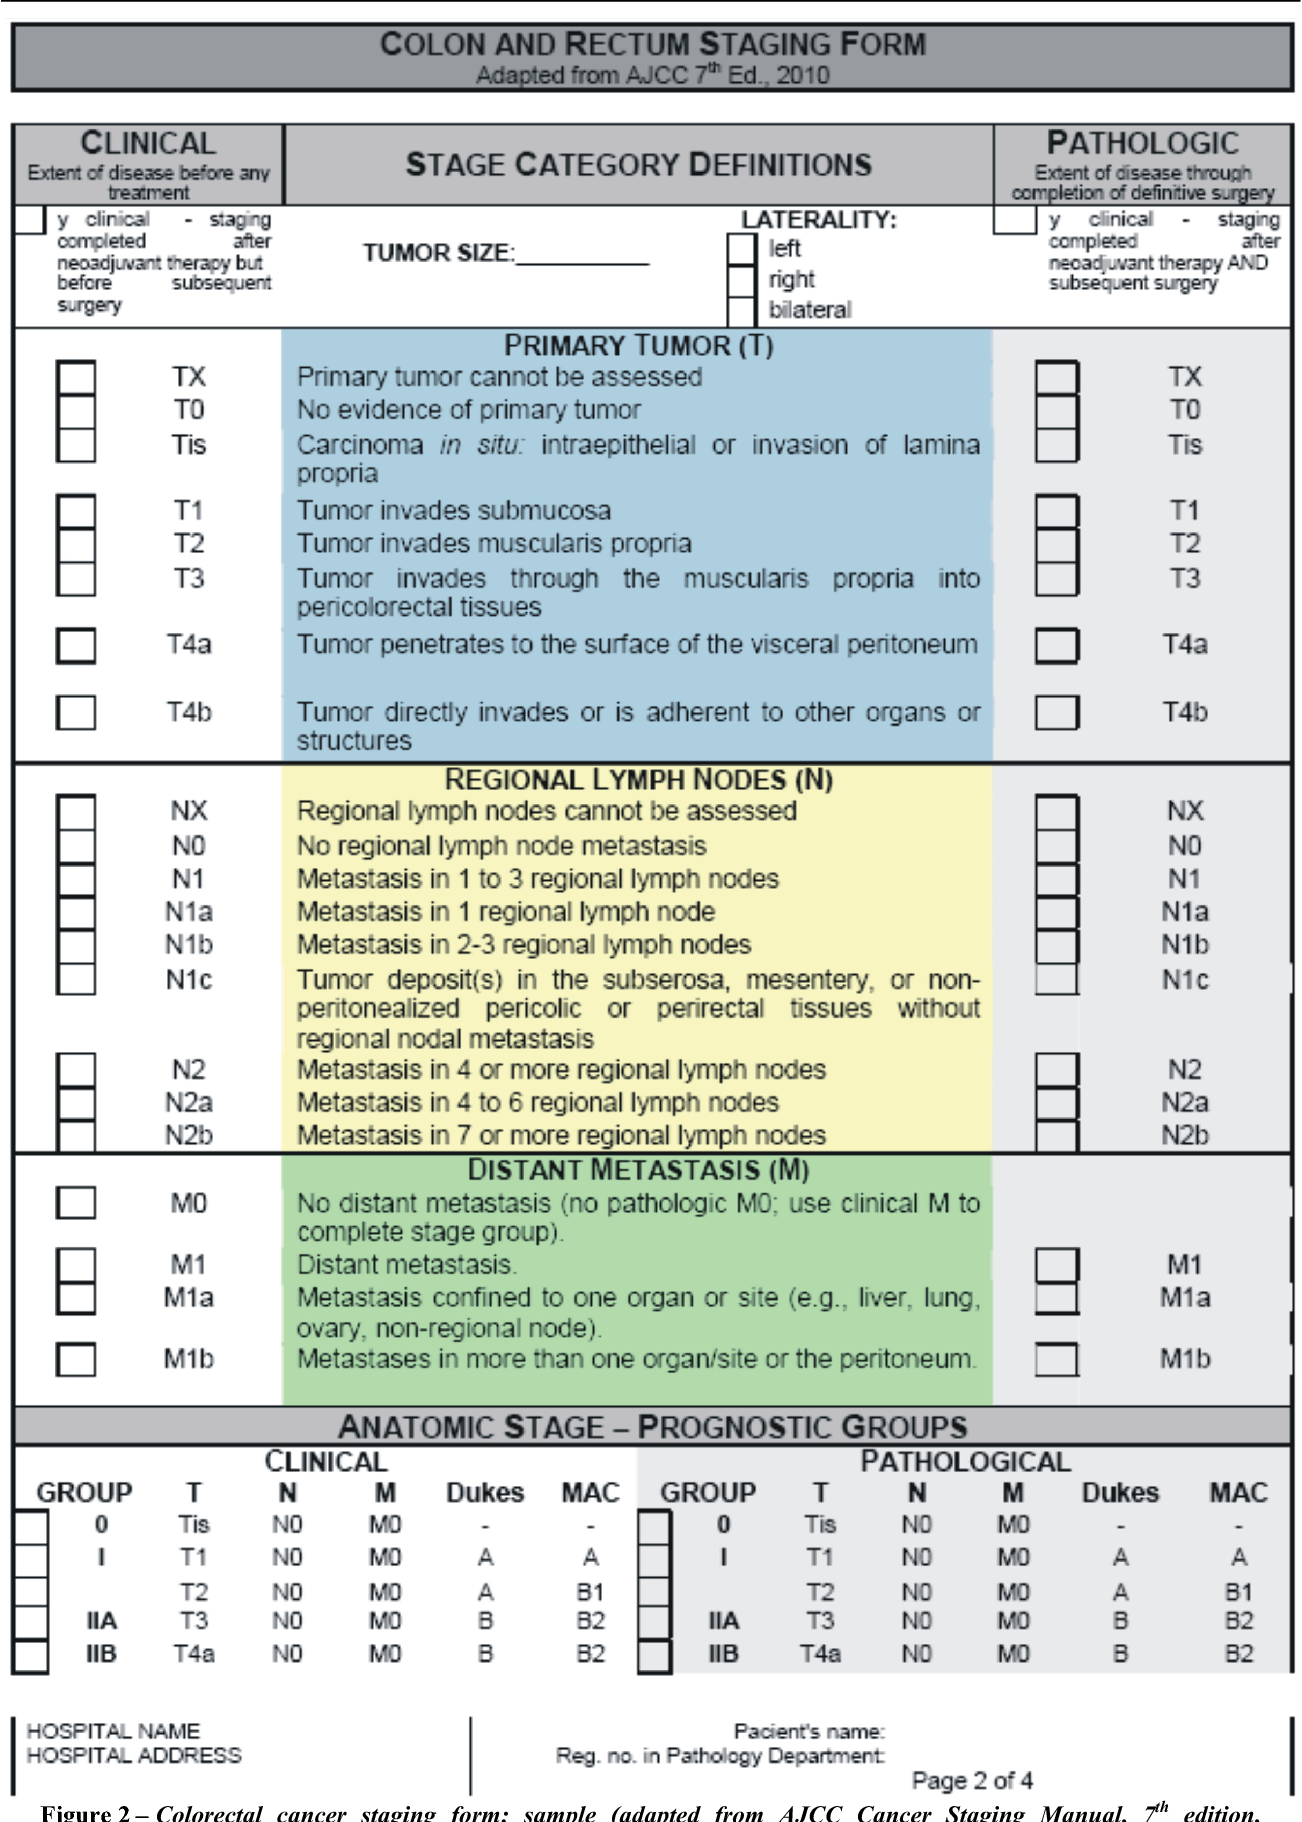 Pdf Colorectal Cancer And The 7th Revision Of The Tnm Staging System Review Of Changes And Suggestions For Uniform Pathologic Reporting Semantic Scholar